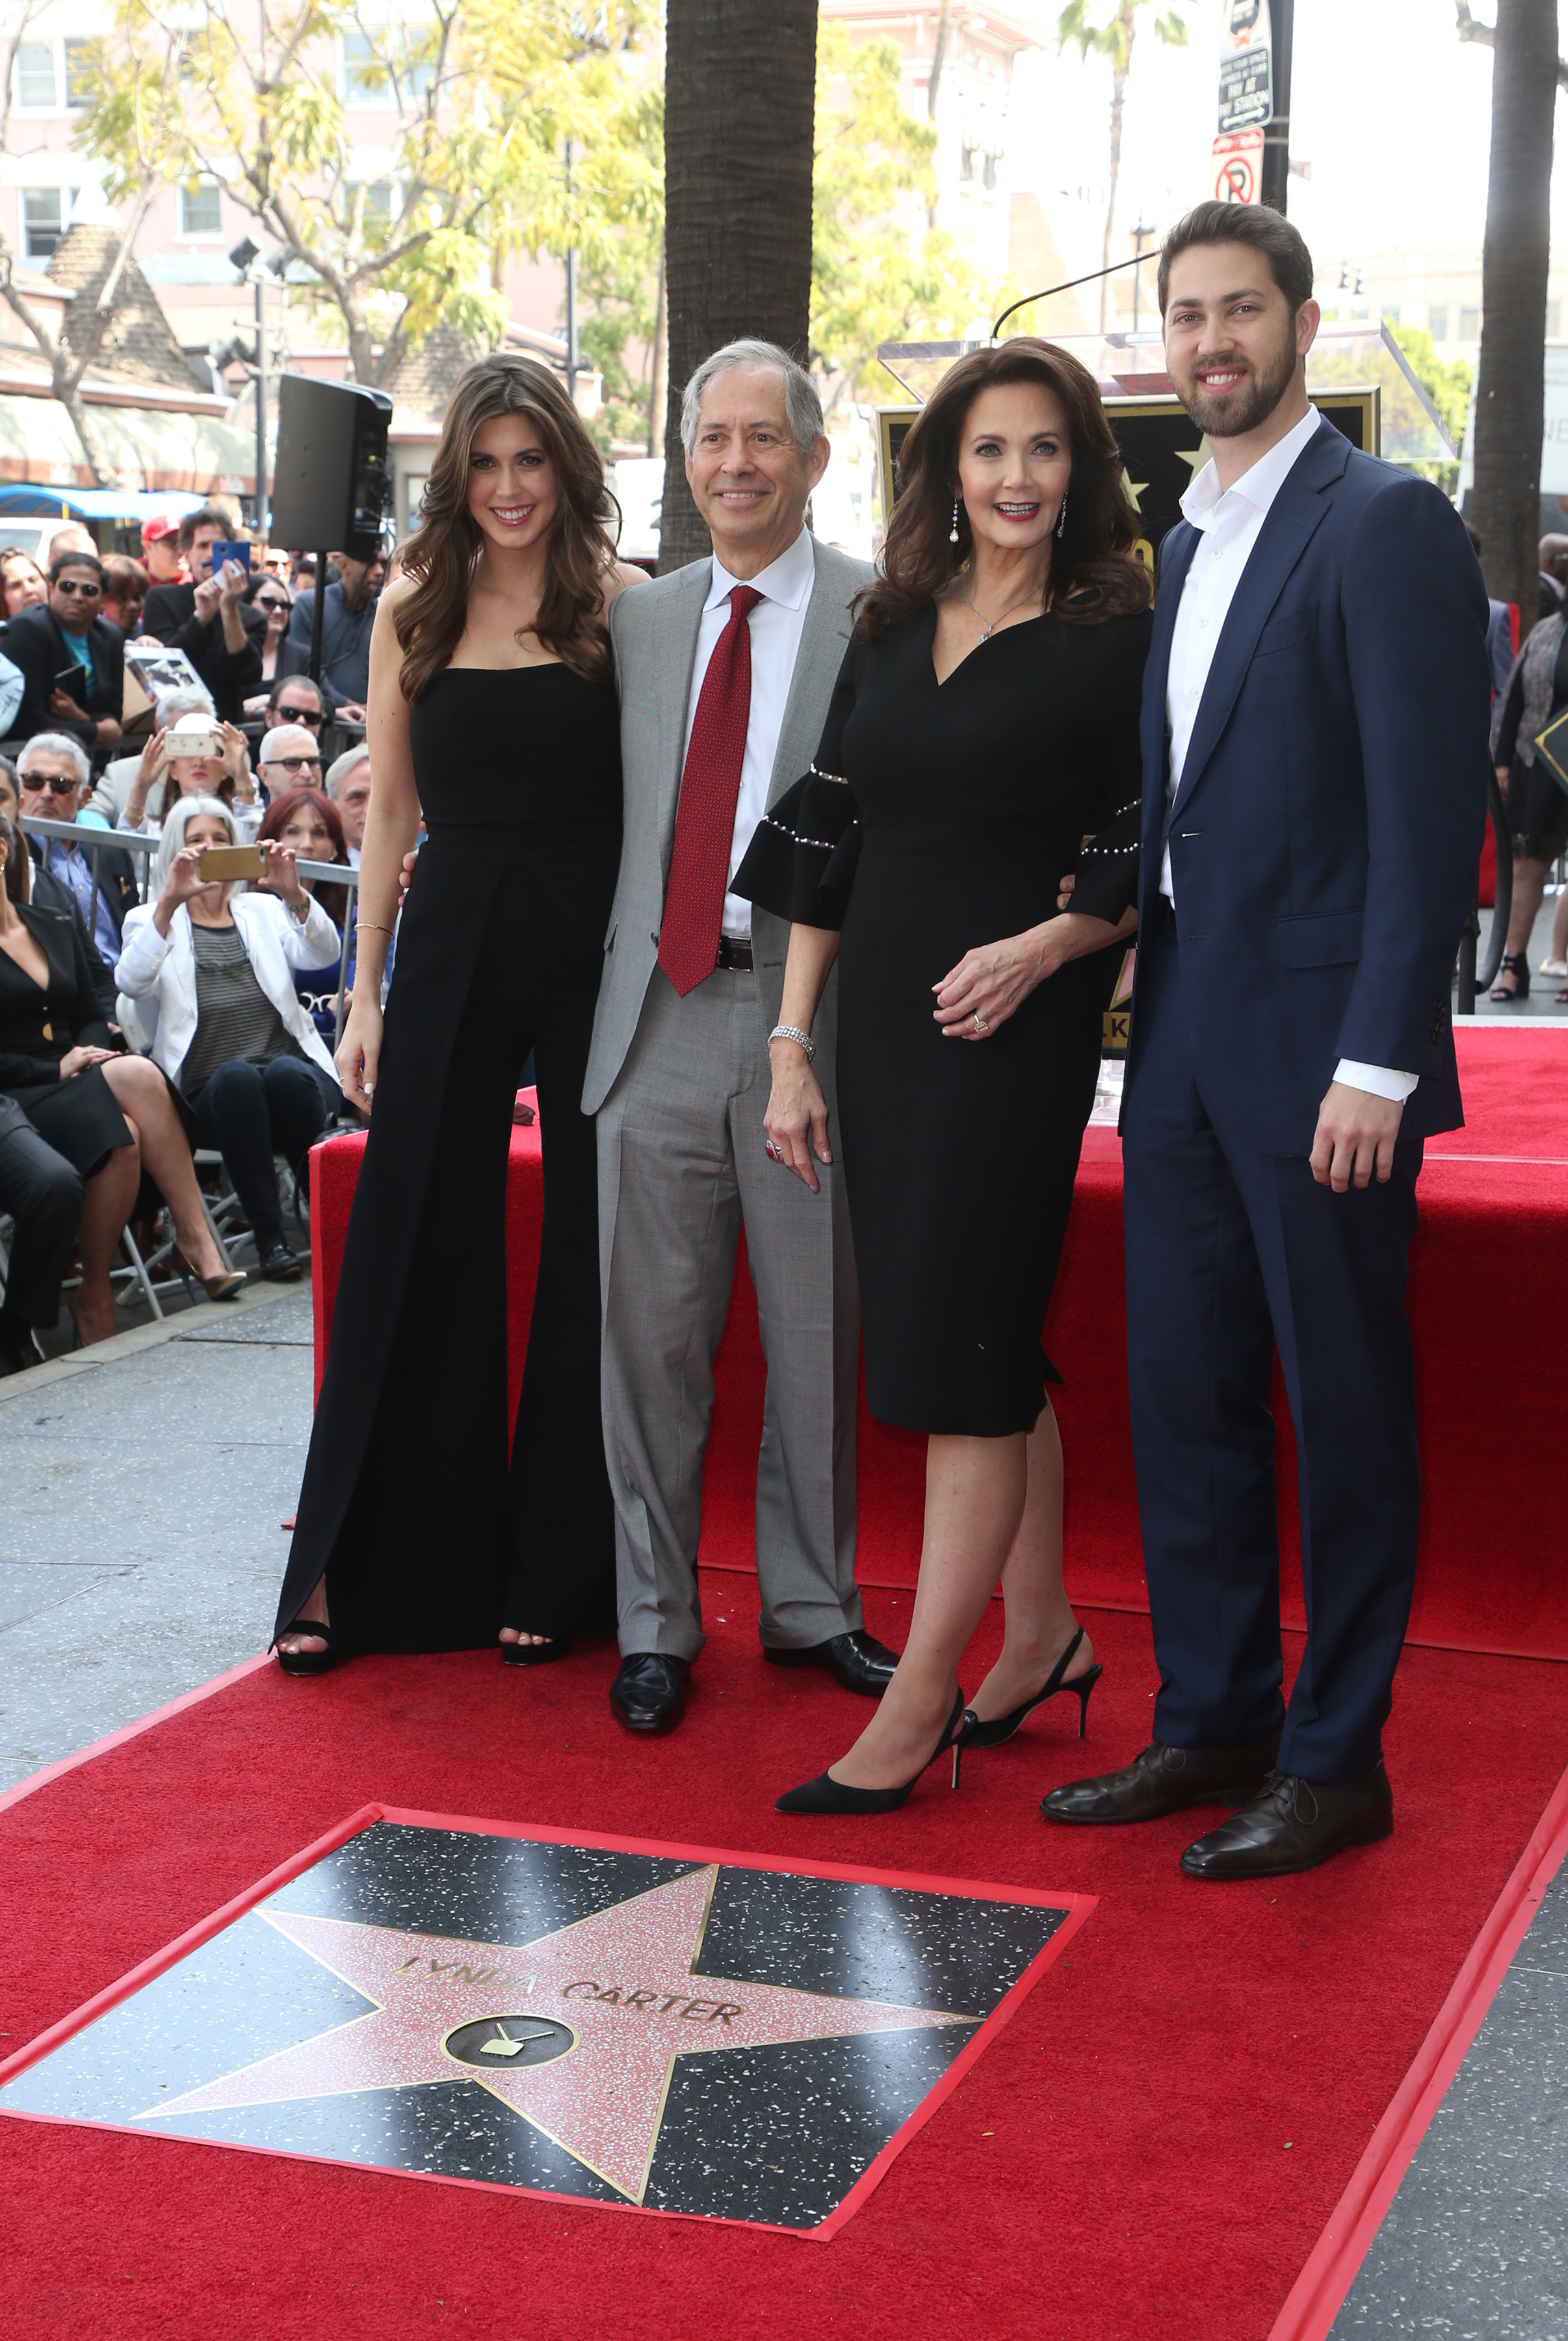 Lynda Carter Honored With Star On The Hollywood Walk Of FameFeaturing: Jessica Altma, Robert A. Altman, Lynda Carter, James AltmanWhere: Hollywood, California, United StatesWhen: 03 Apr 2018Credit: FayesVision/WENN.com